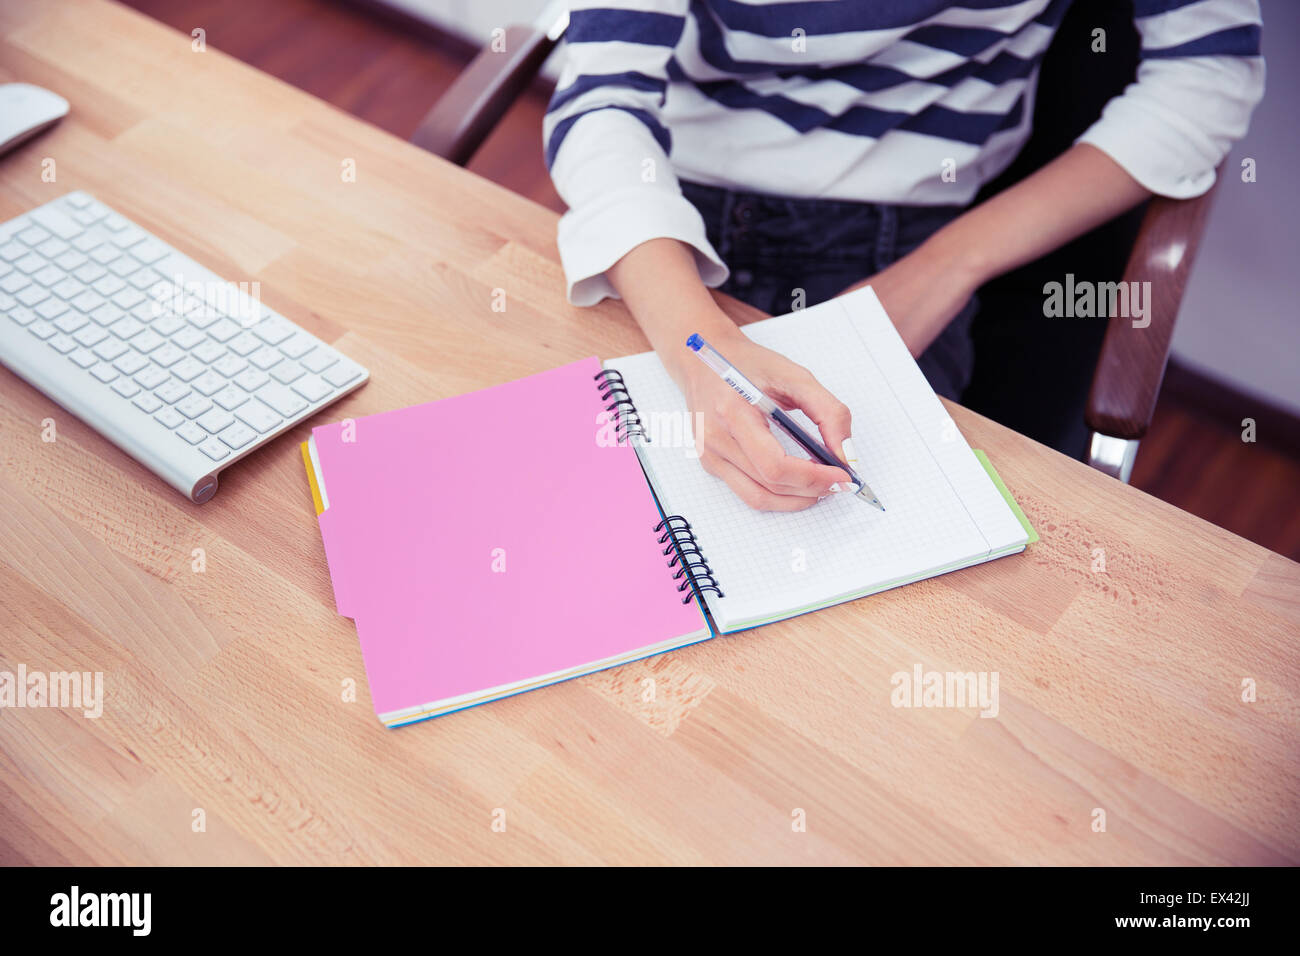 Closeup portrait of a casual woman writing notes in office - Stock Image